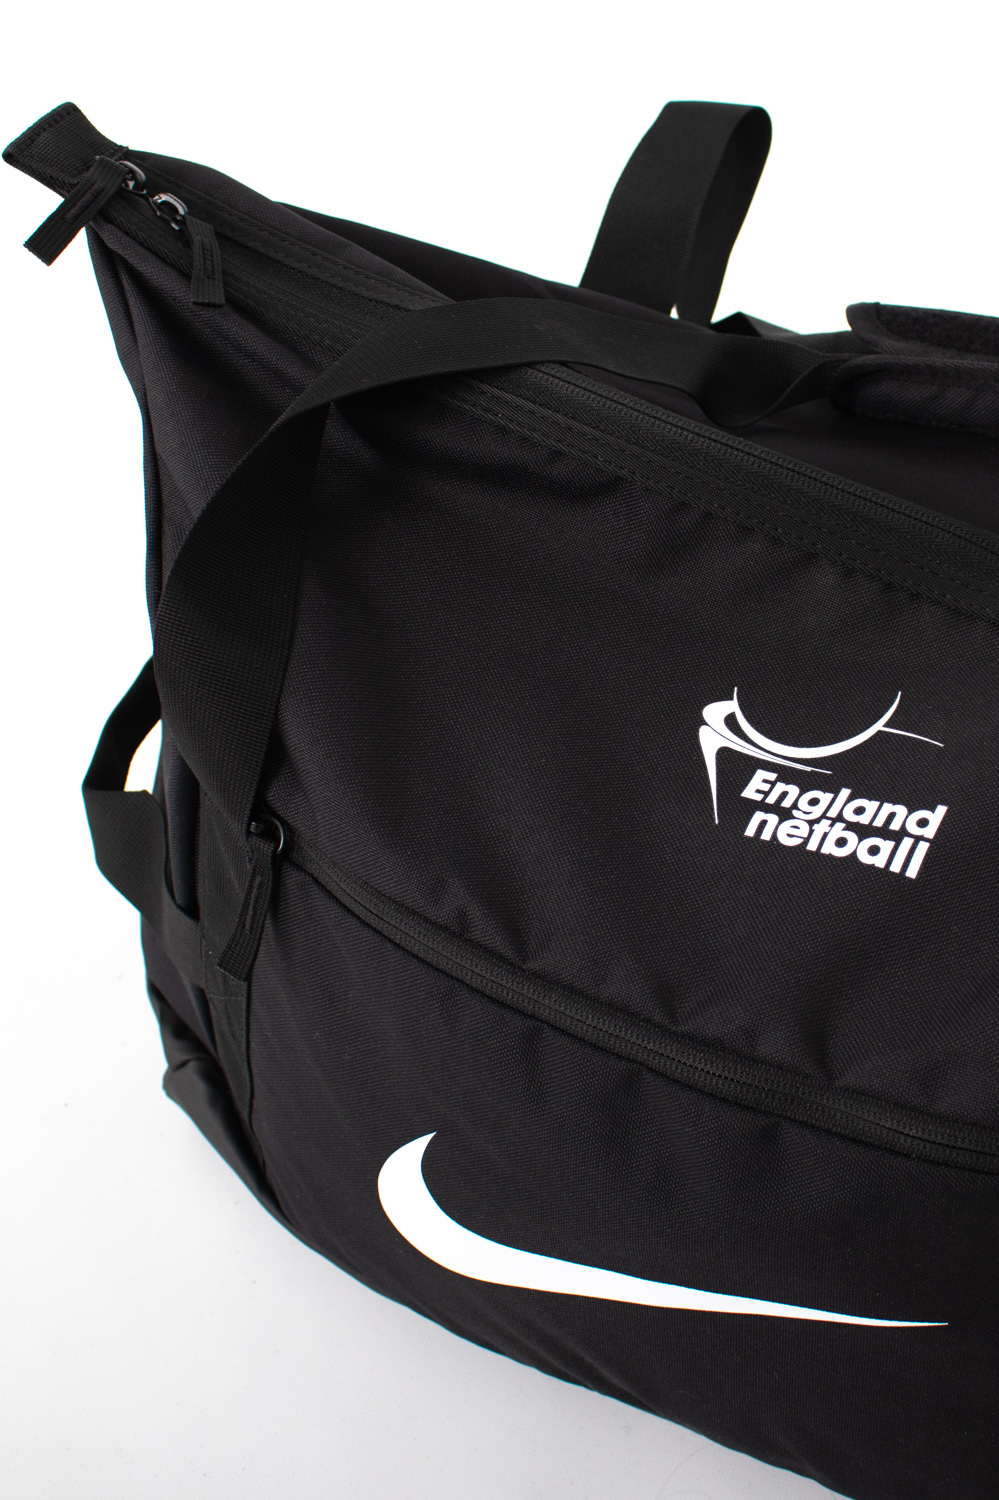 EN-Kitlocker Team White Nike Medium Duffel Bag